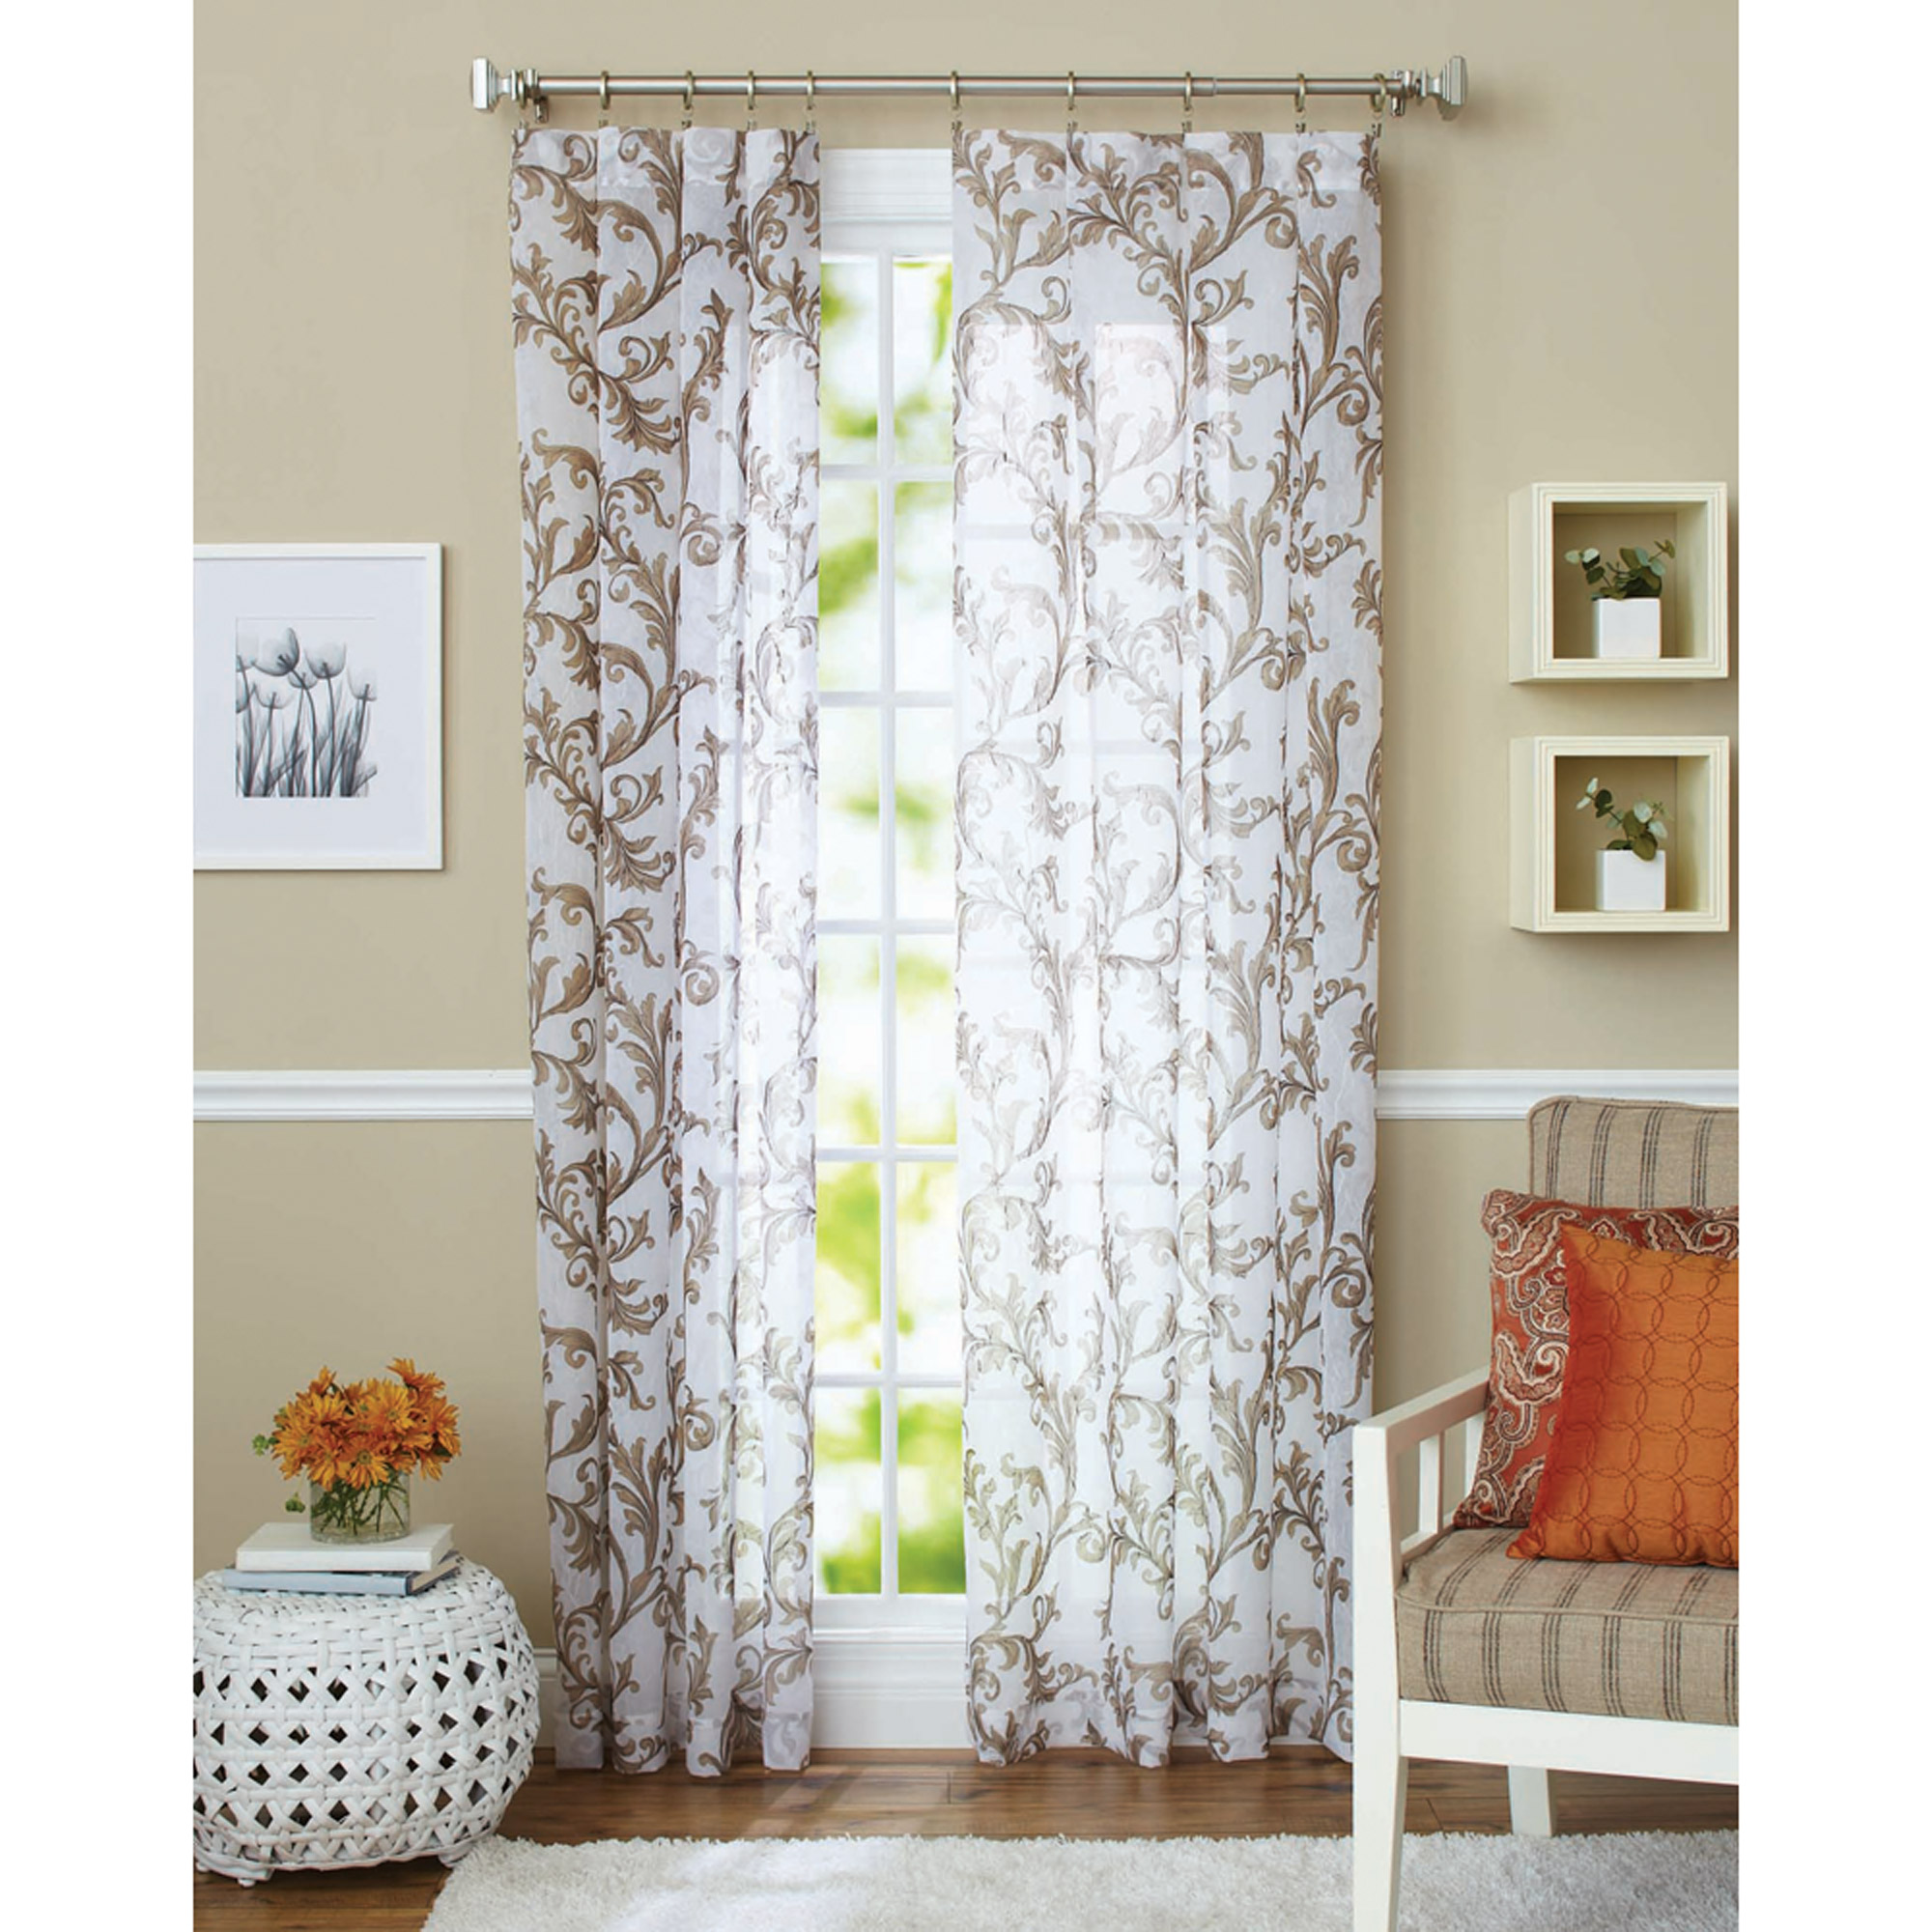 Better home and garden curtain panels curtain Better homes and gardens curtains